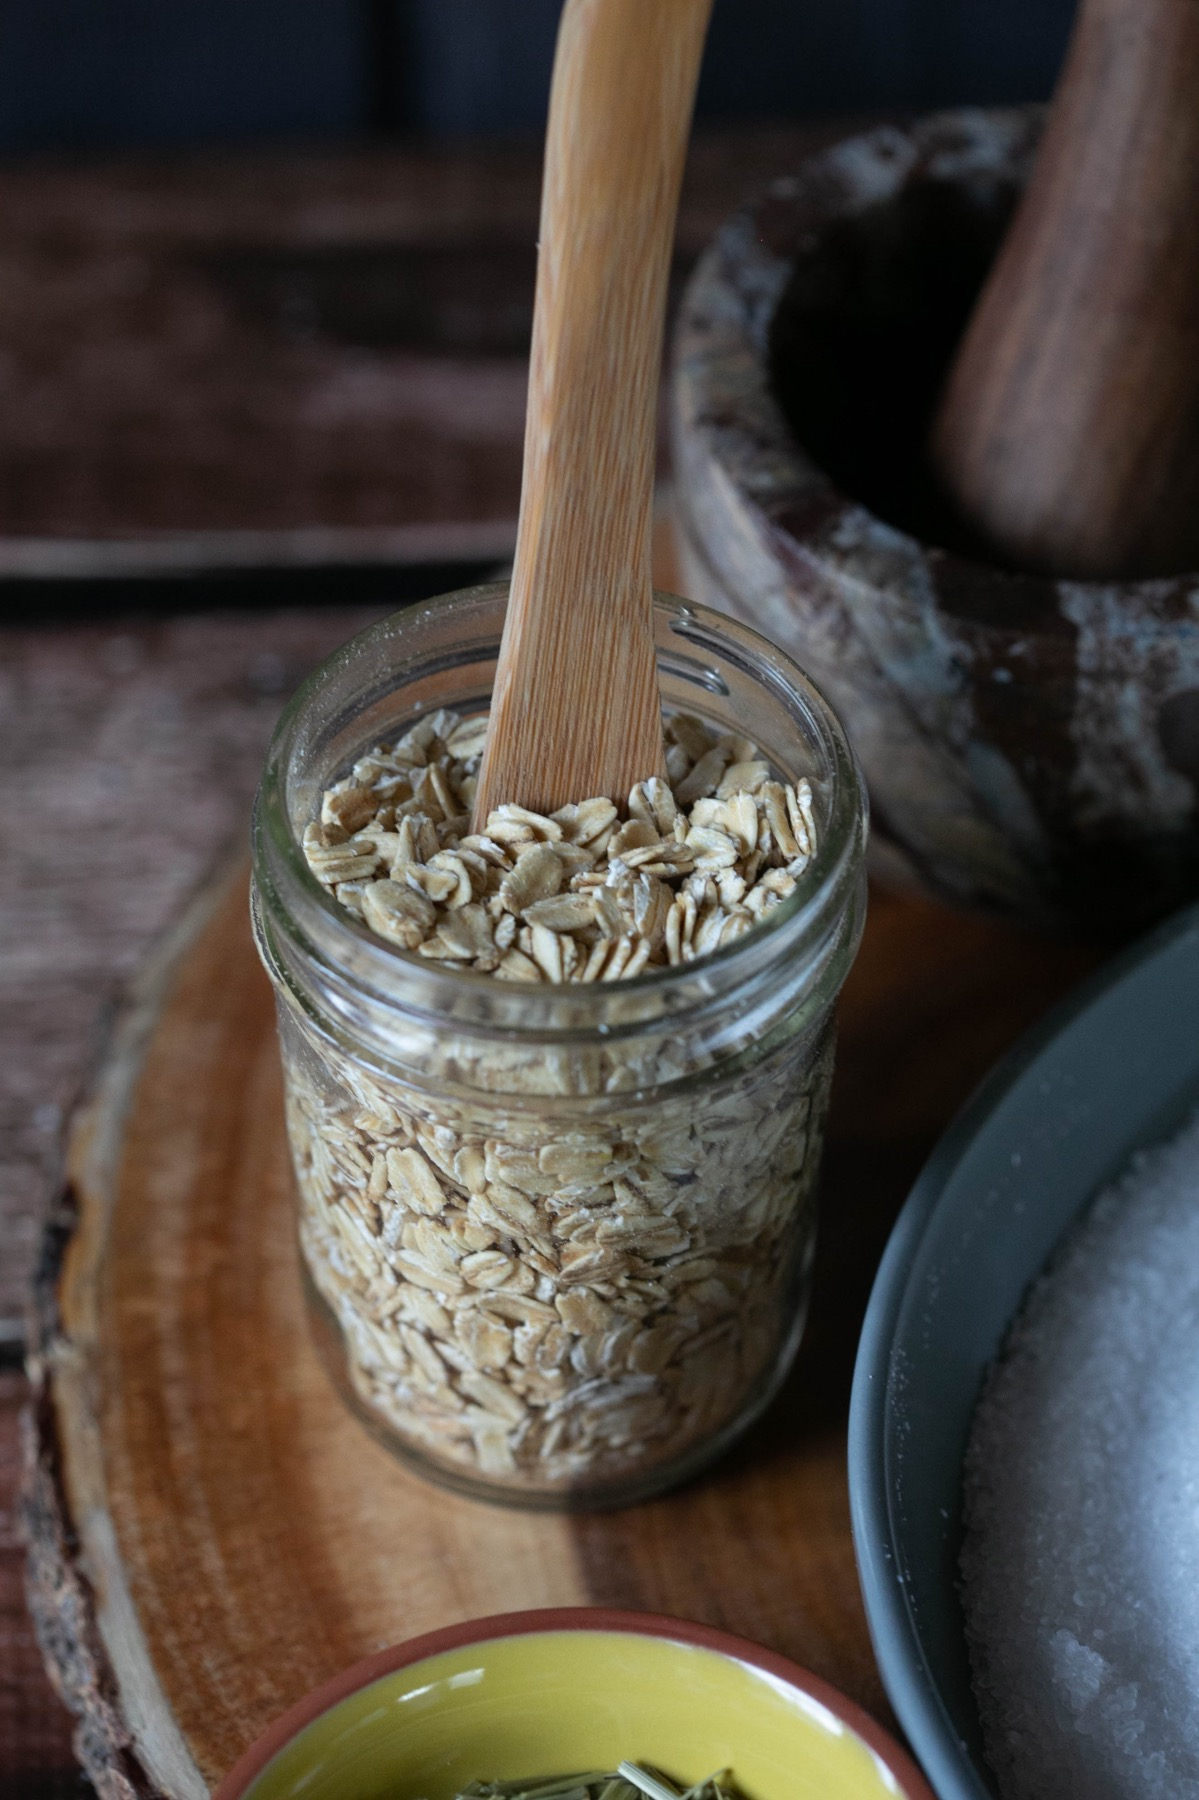 oats to add to homemade forest bath soak recipe